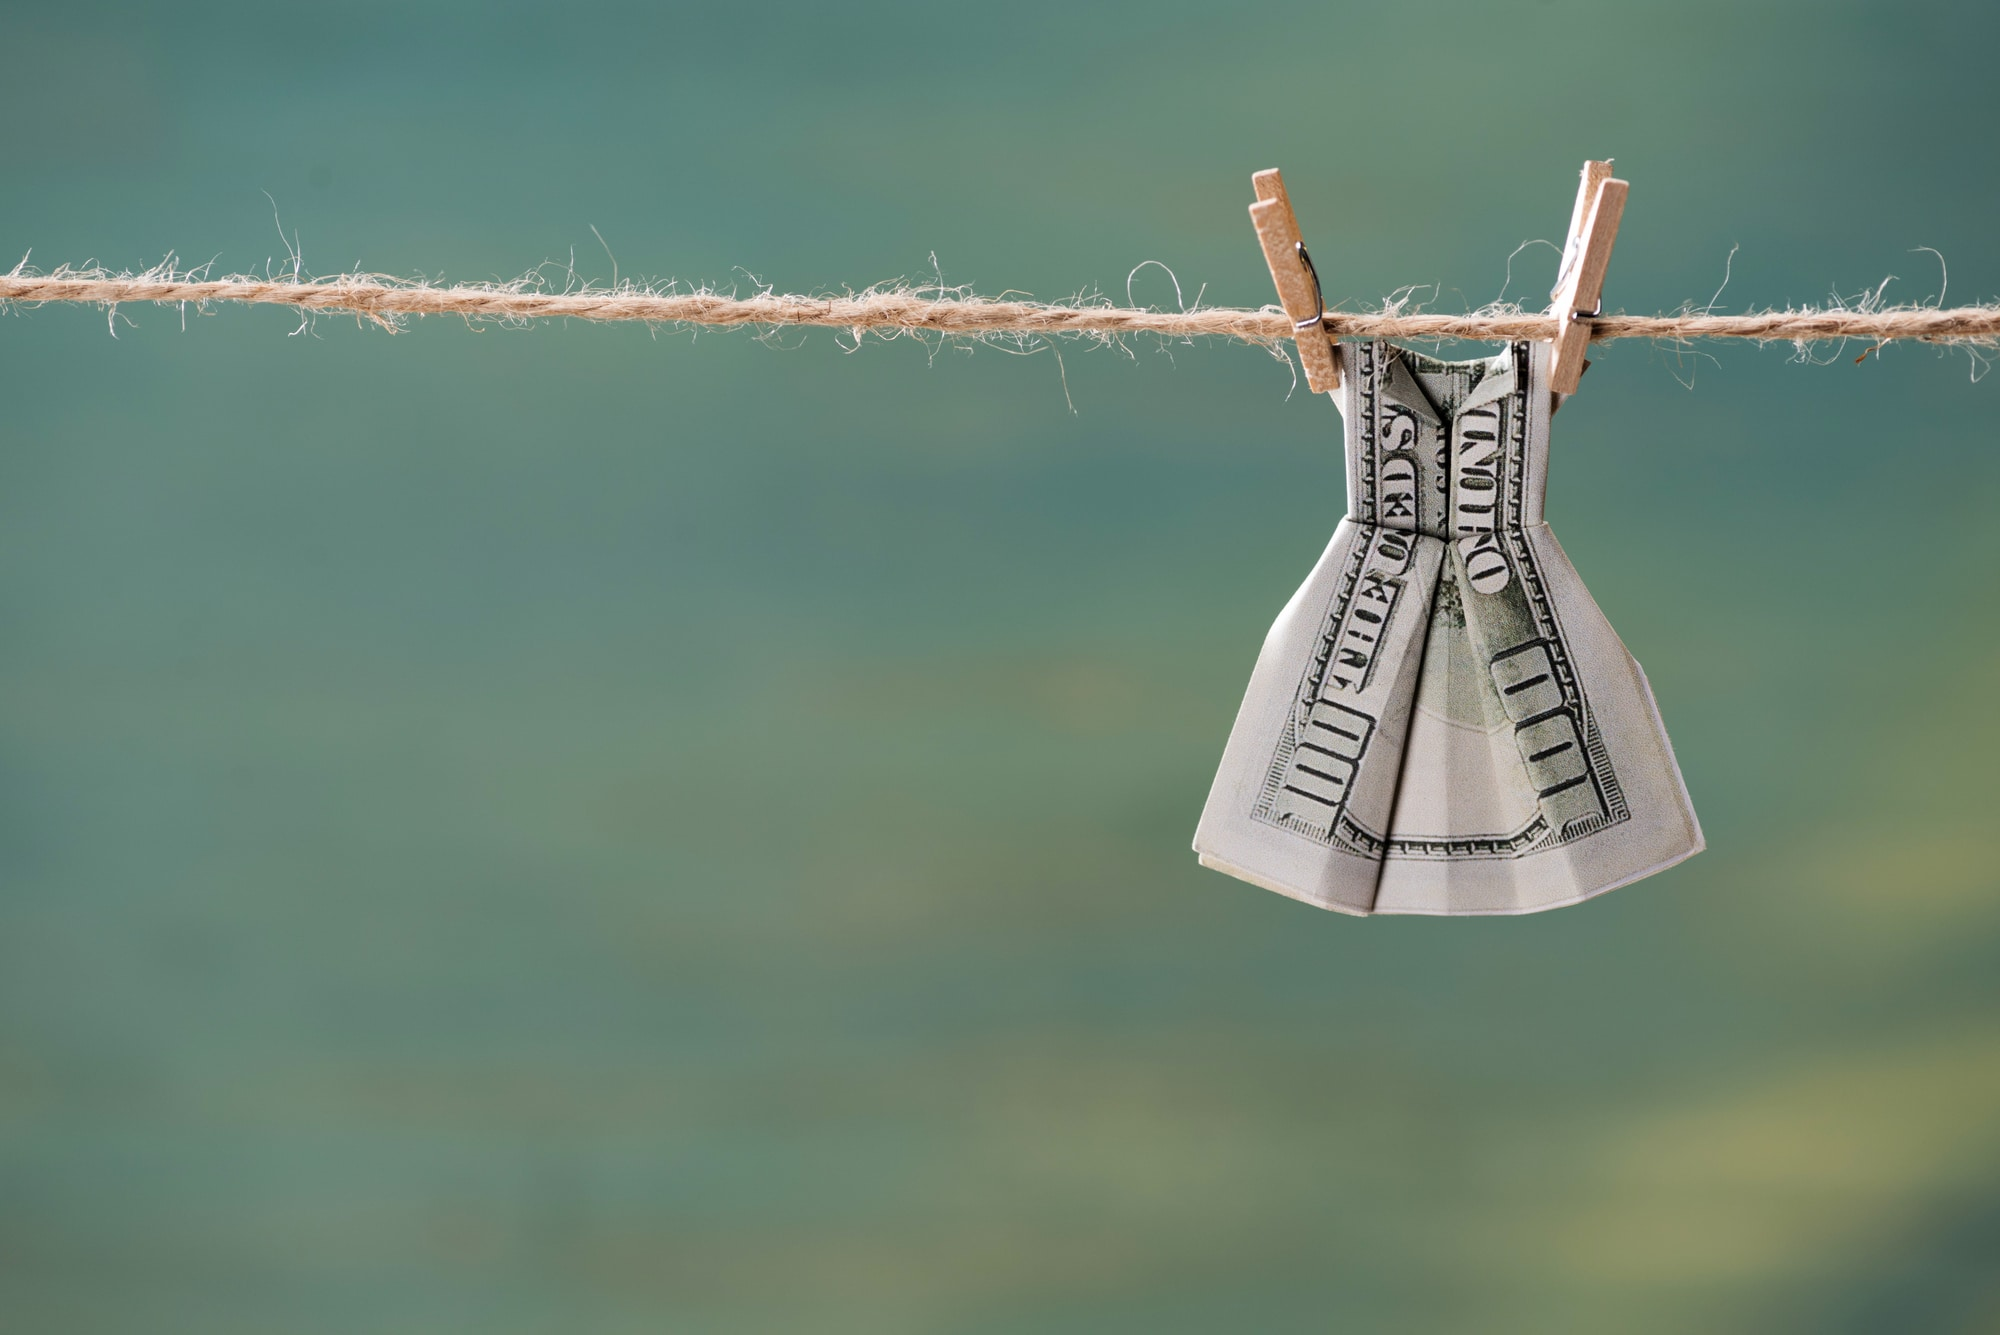 dollar bill folded into dress hanging on clothesline